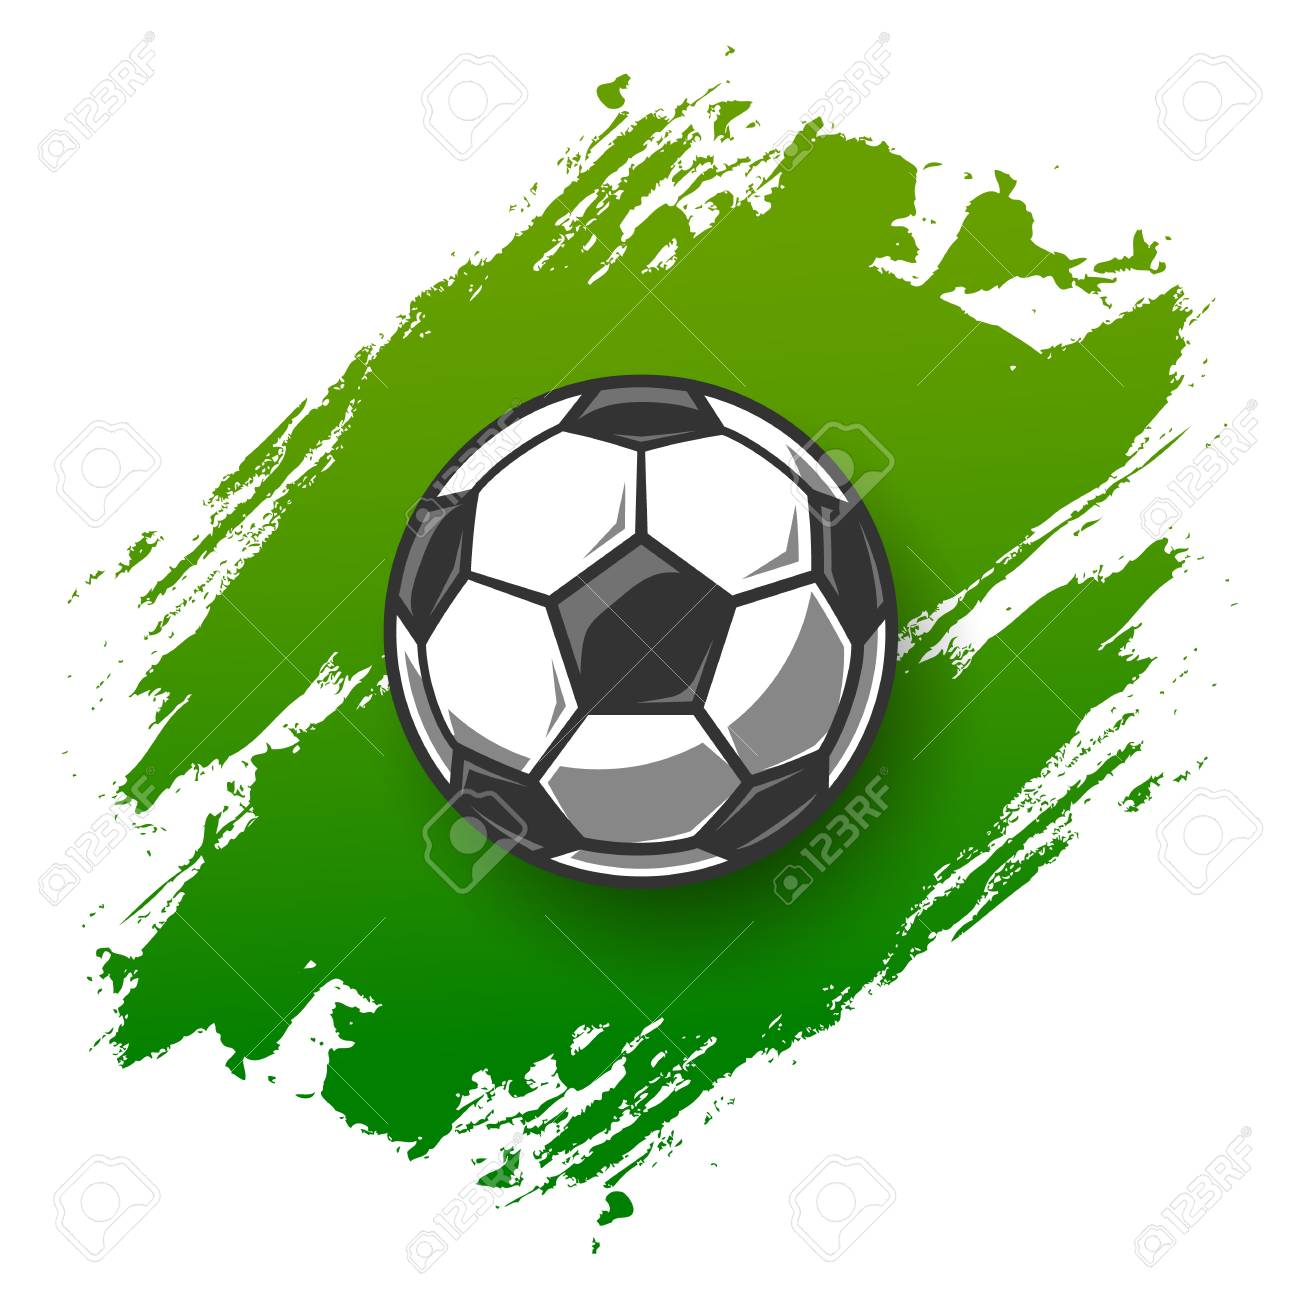 Soccer grunge background with ball. Vector illustration - 100120151